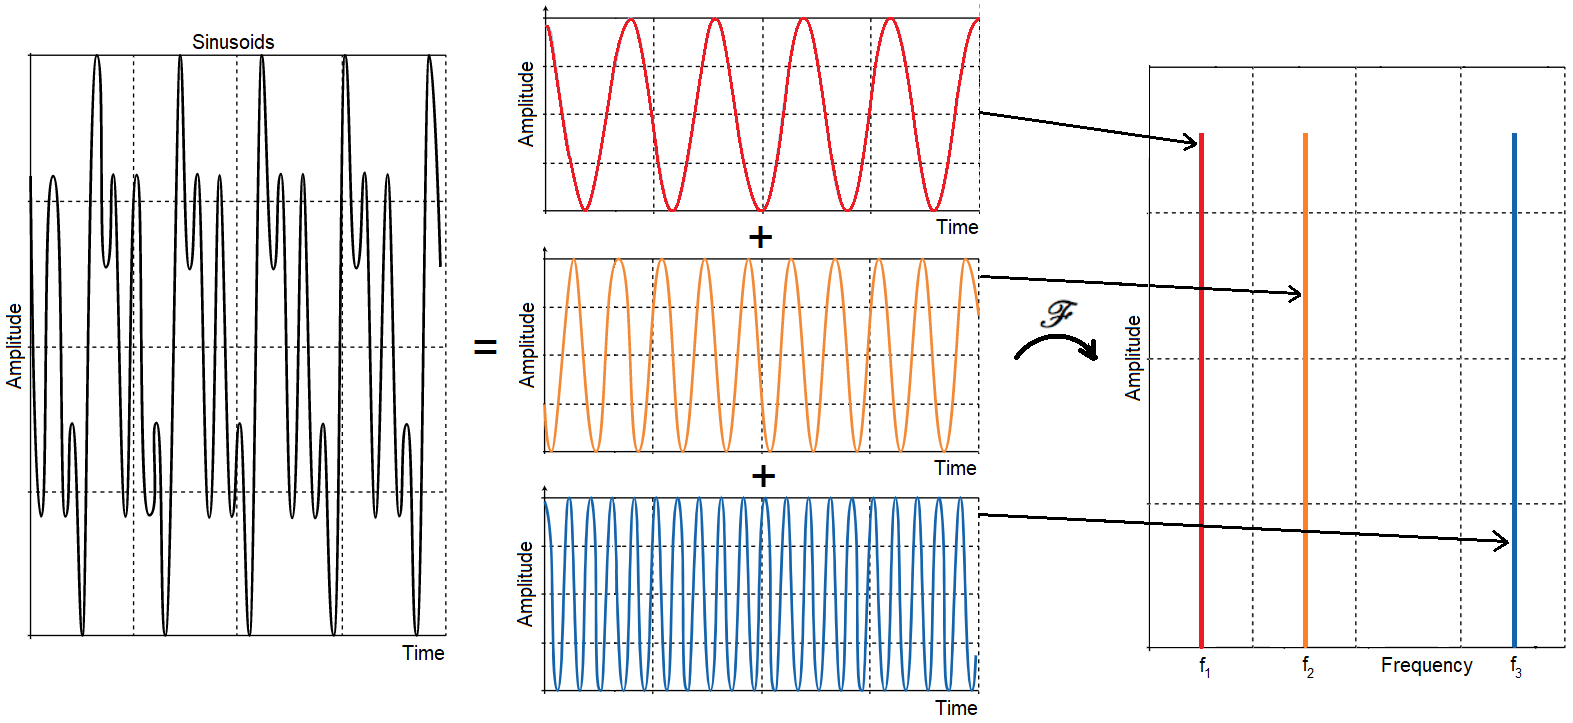 A figure of a time signal consisting of sinusoidal components, and how it can be represented in the frequency domain